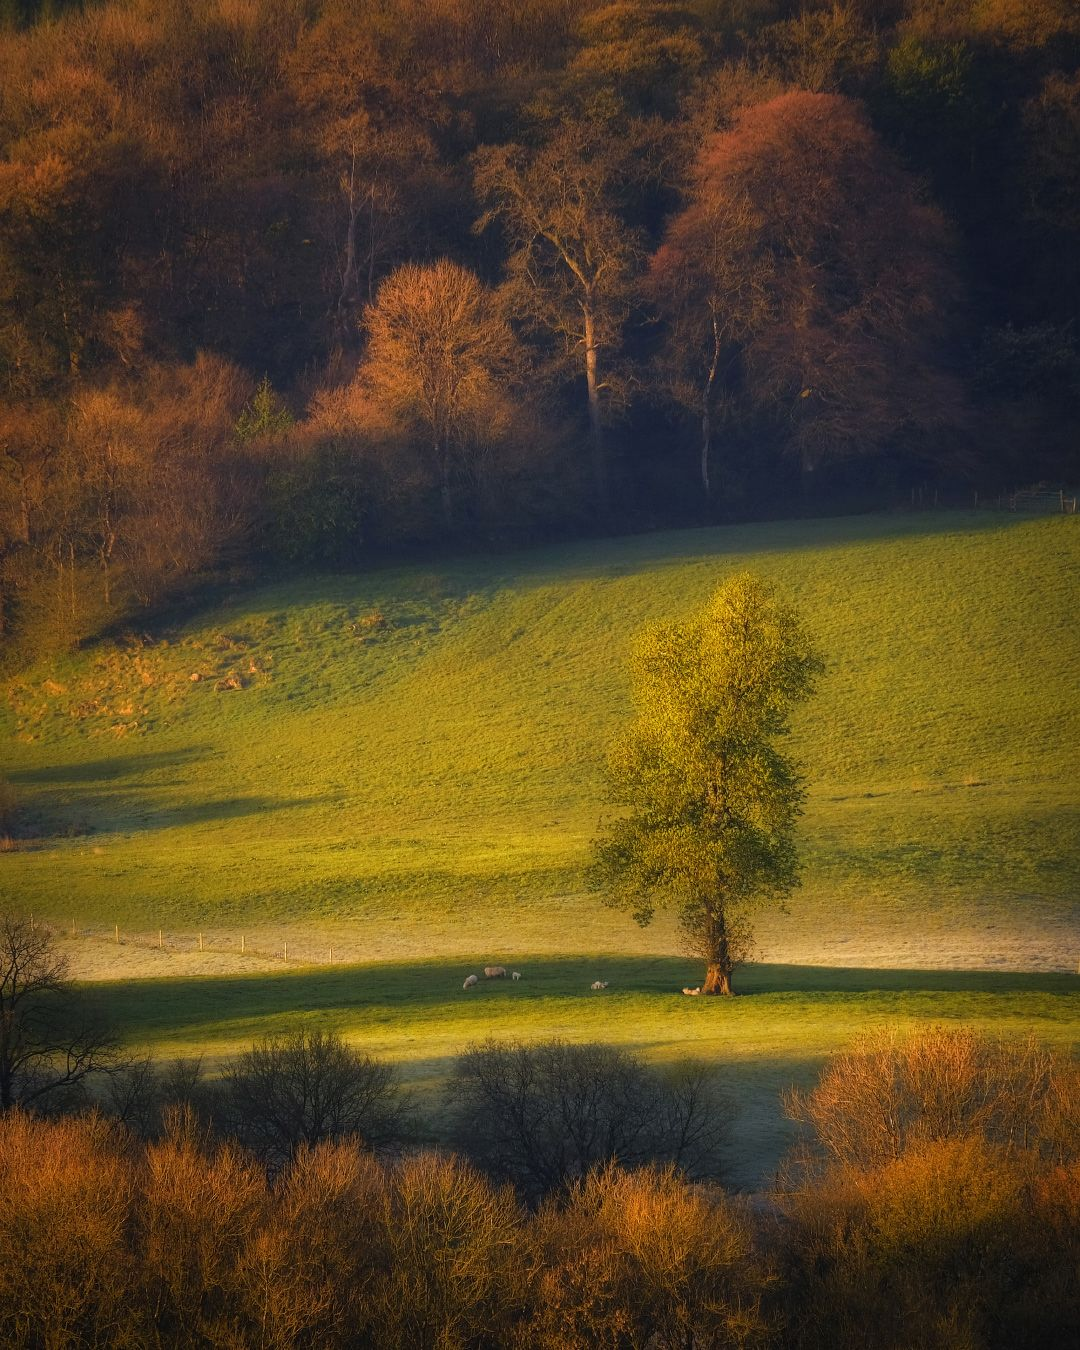 ...sunny morning... ireland landscape countryside nature outdoors rural sheep tree lonely meadows fields wood forest sunshine sunrise morning dawn scenic scenery picturesque awe spectacular europe